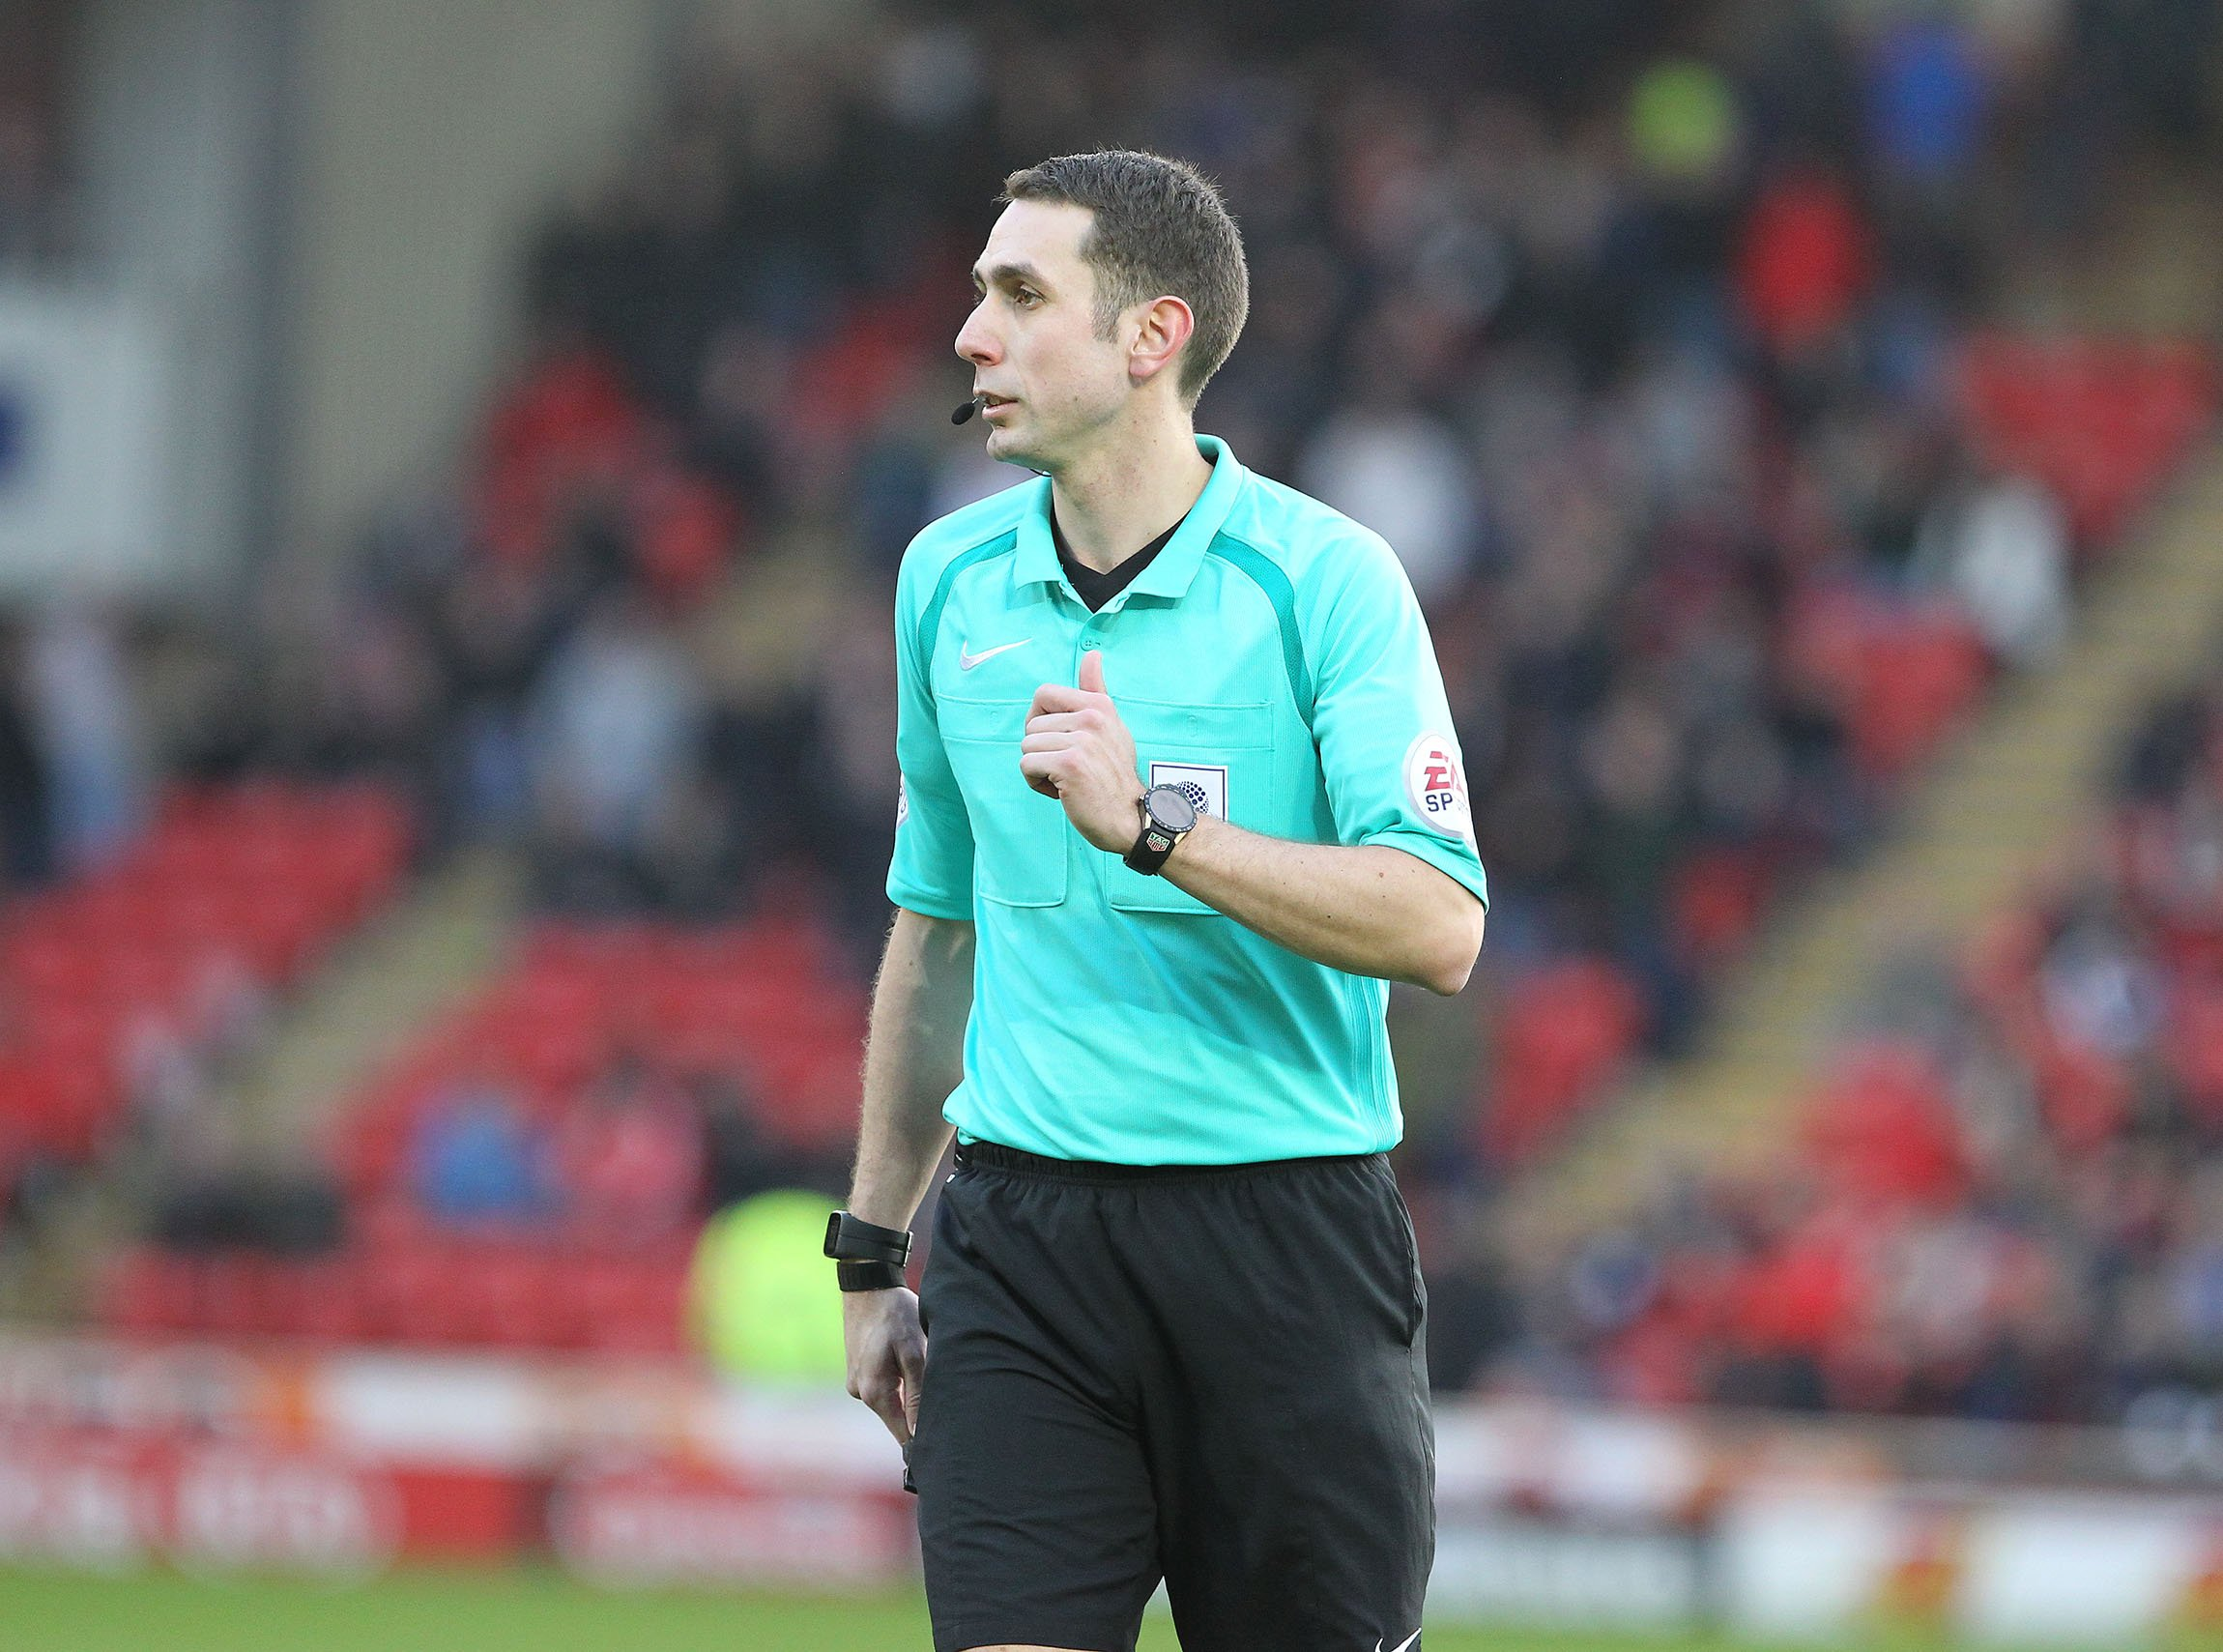 Referee and VAR confirmed for Albion's FA Cup tie